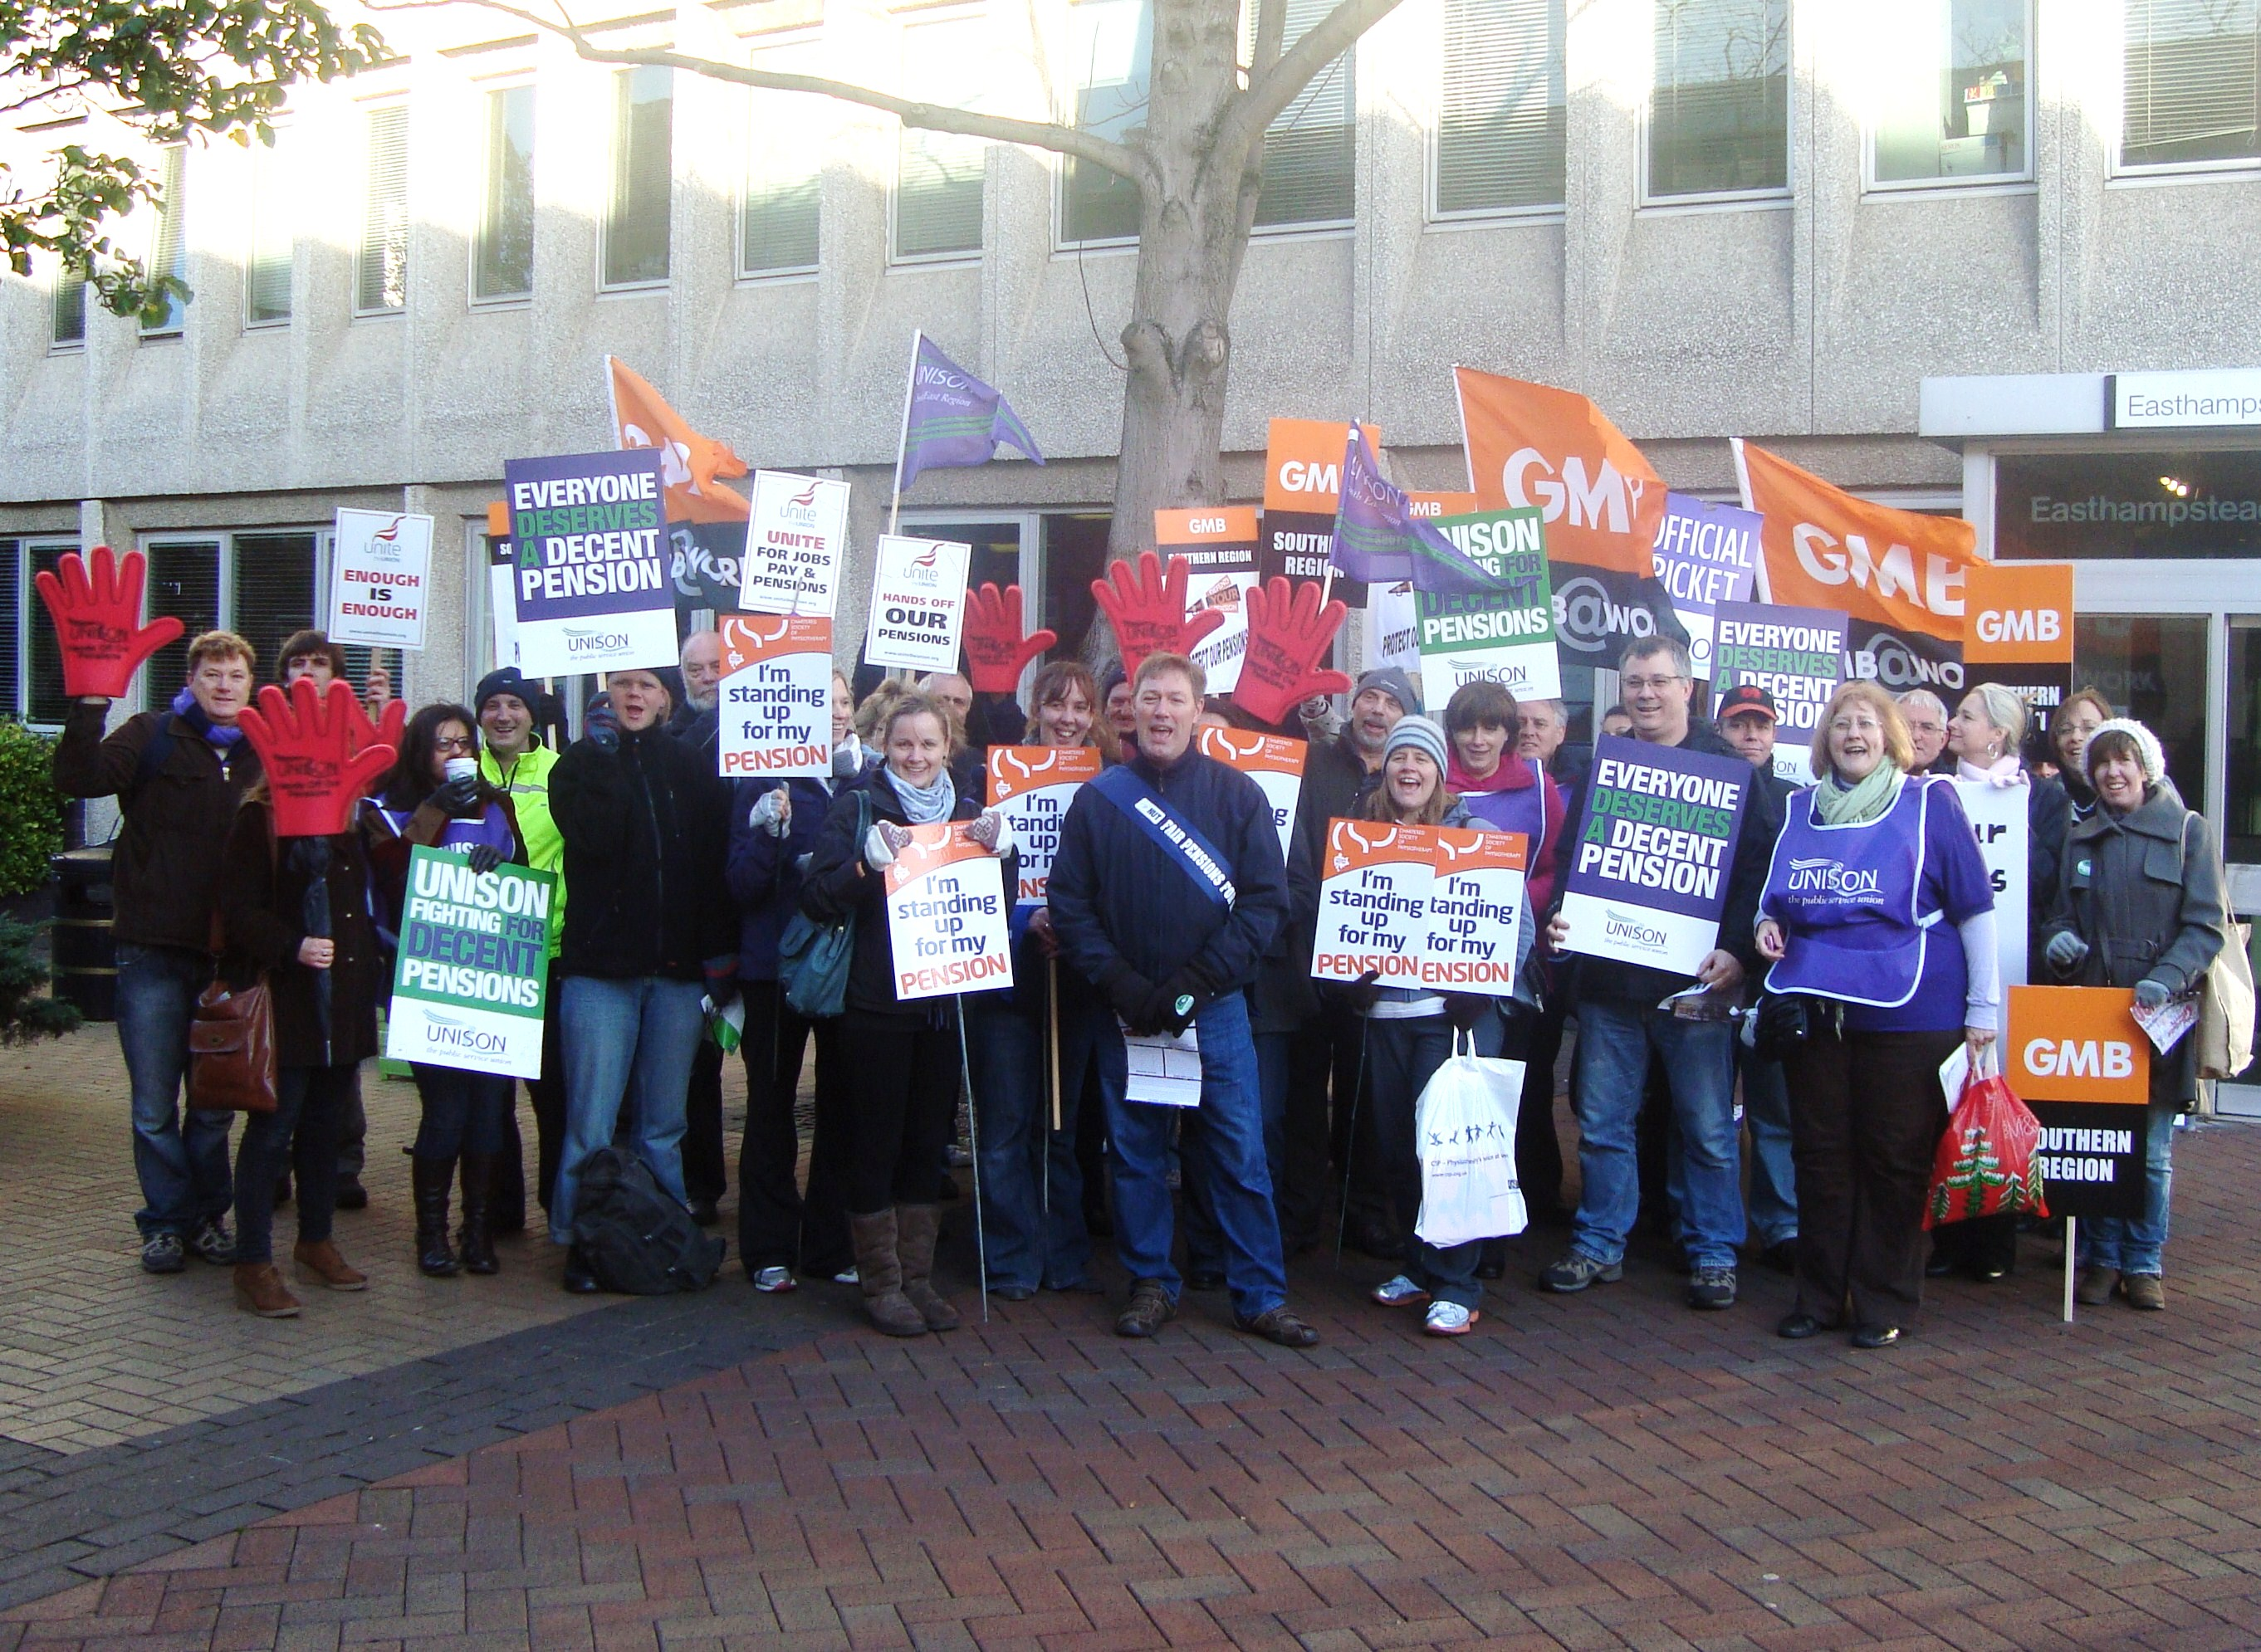 30.11.'11.Local Gov't Pay & Pensions Picket at Easthampstead Ho..JPG